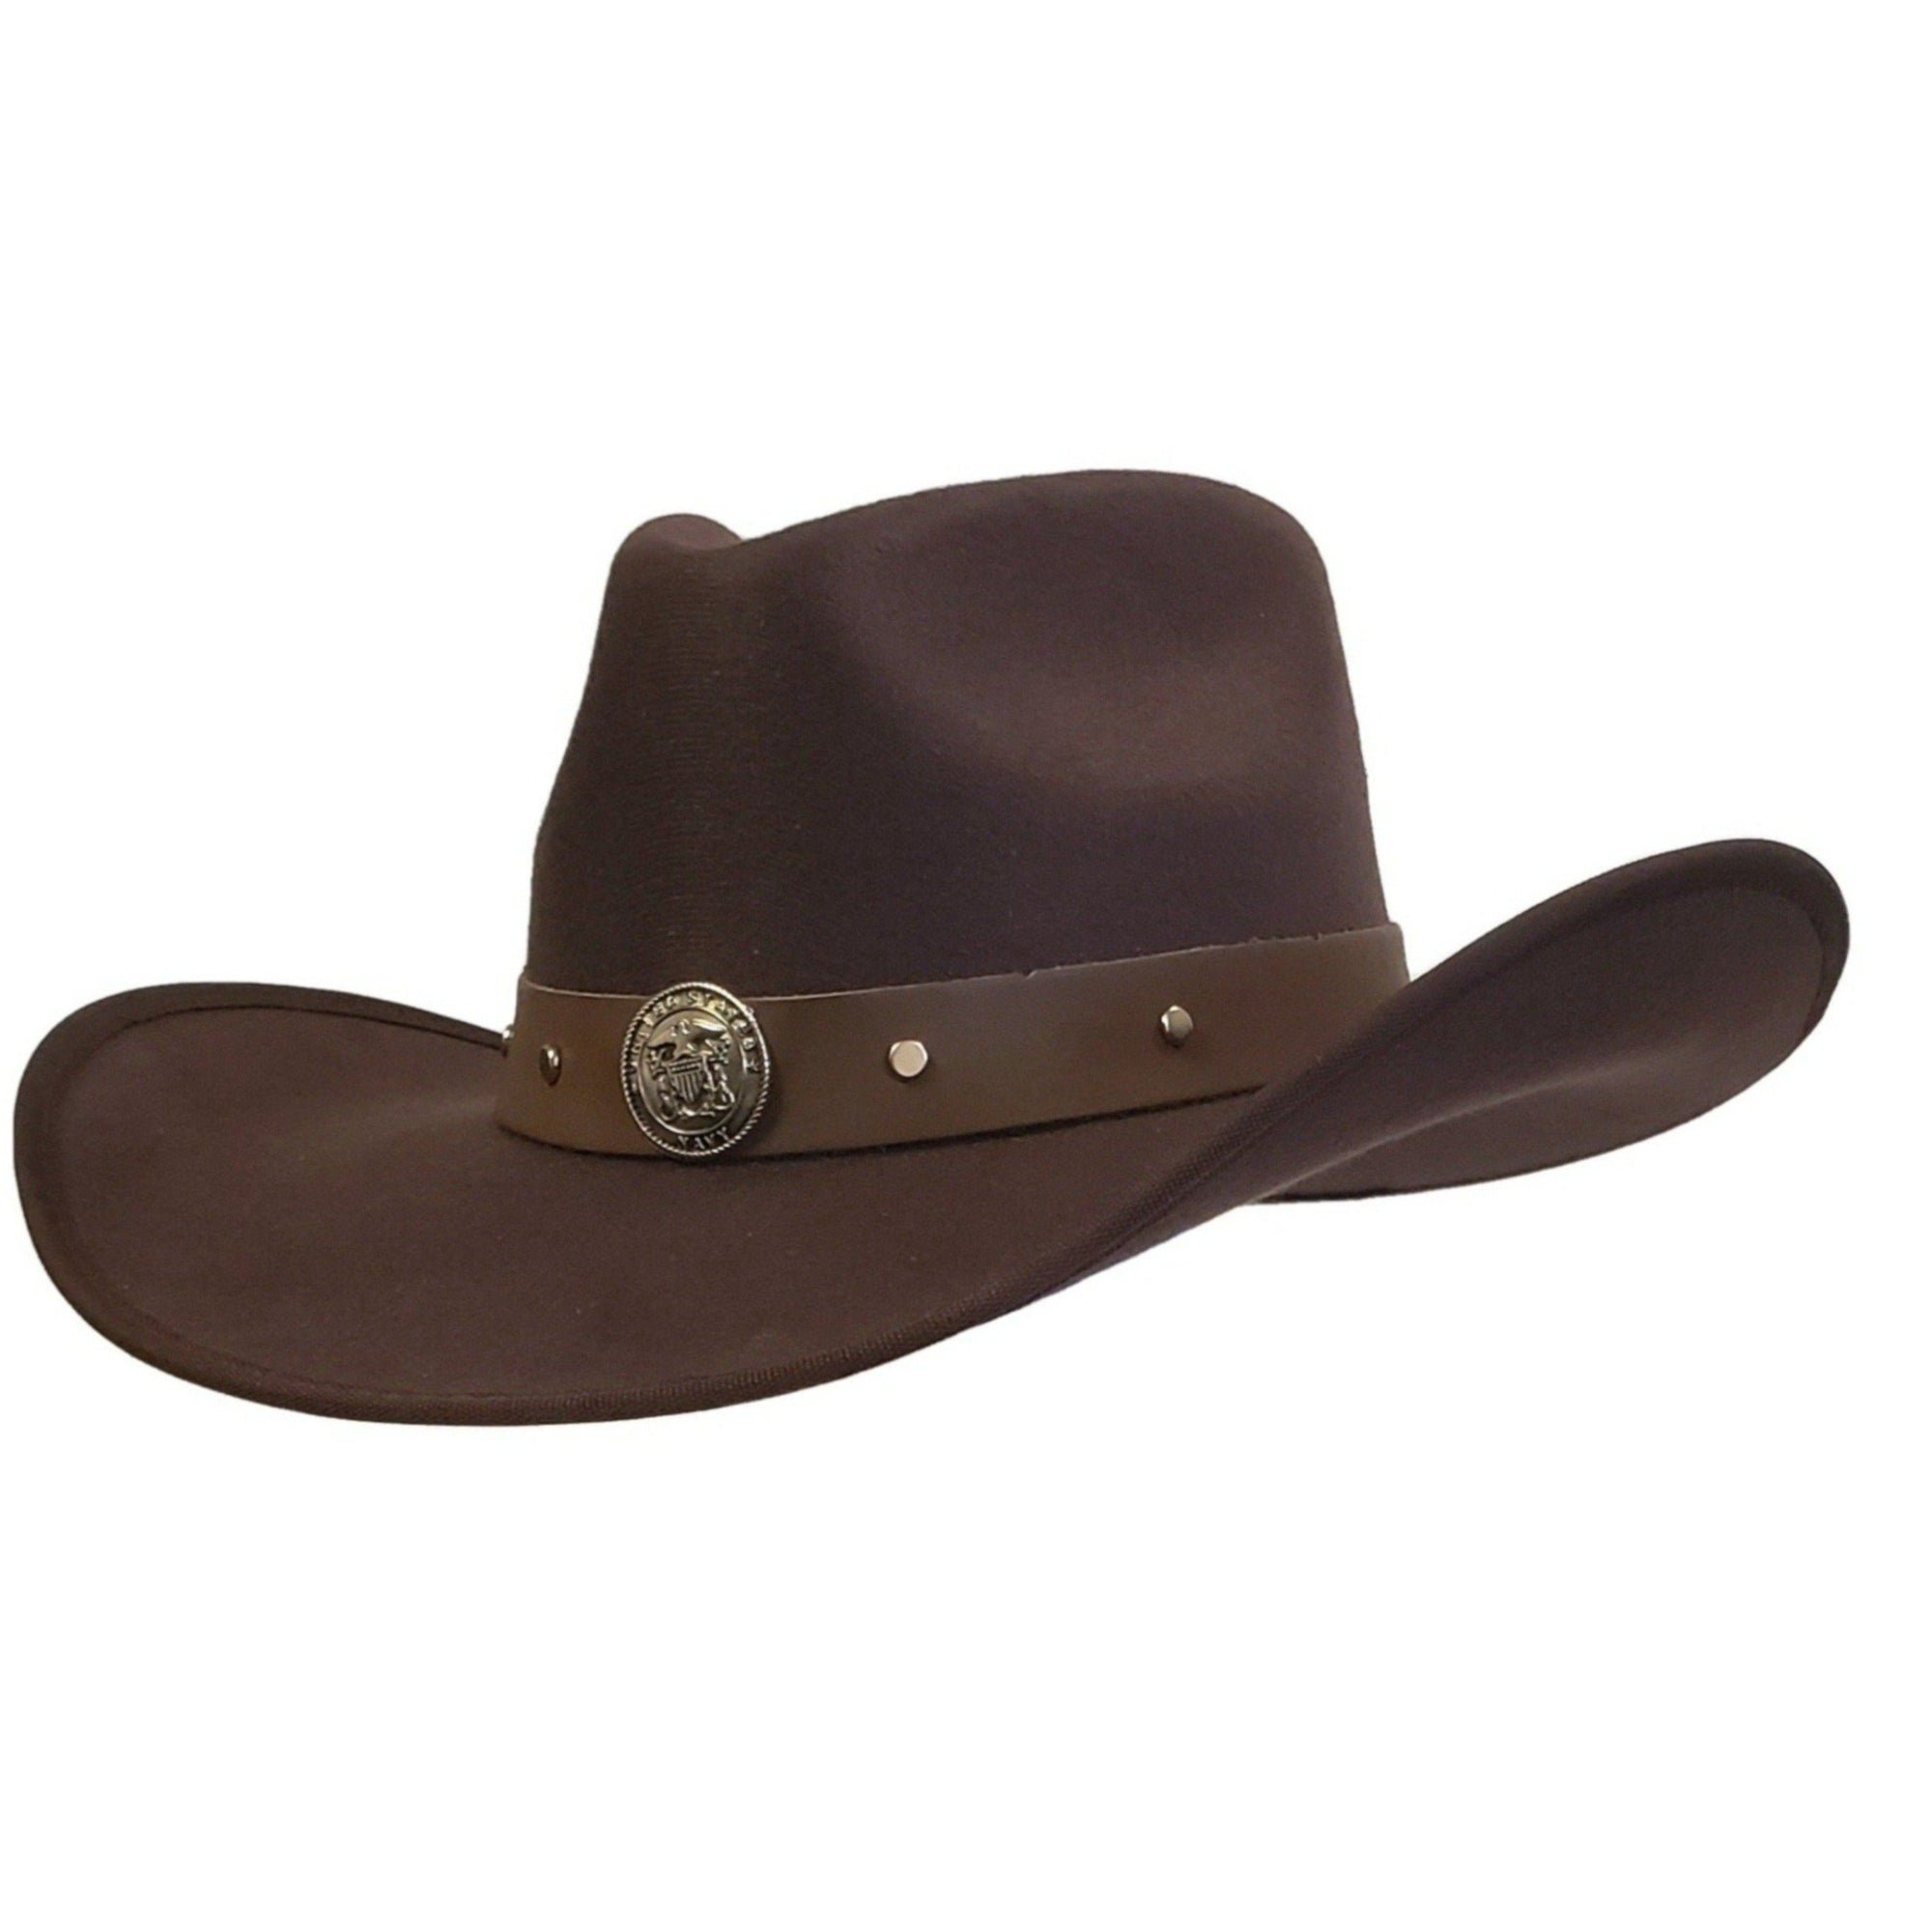 Brown cotton felt cowboy hat with Navy emblem. Cowoby hat from Gone country Hats.